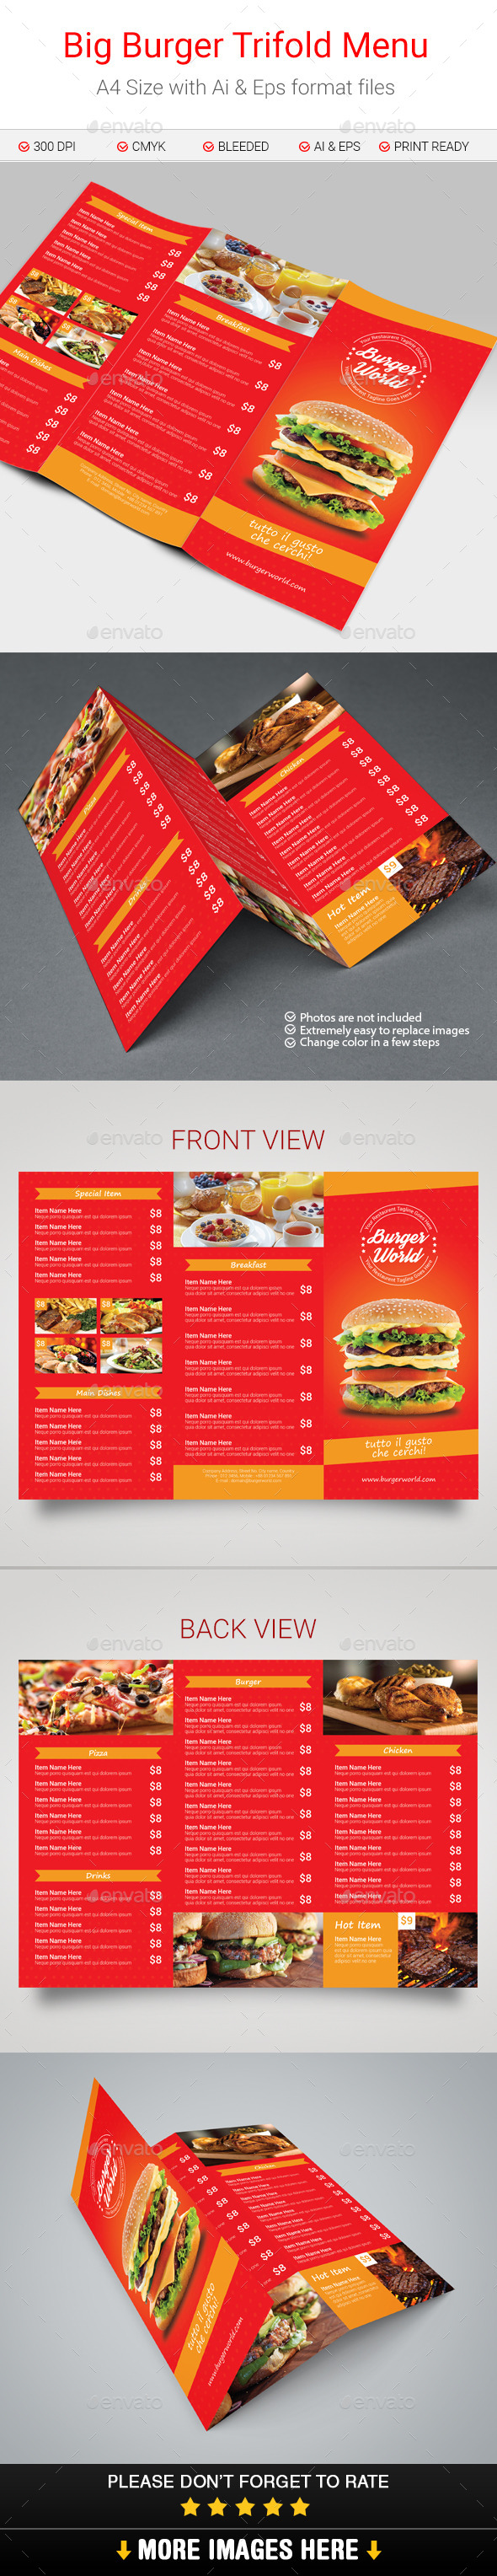 GraphicRiver Big Burger Trifold Menu 10843686